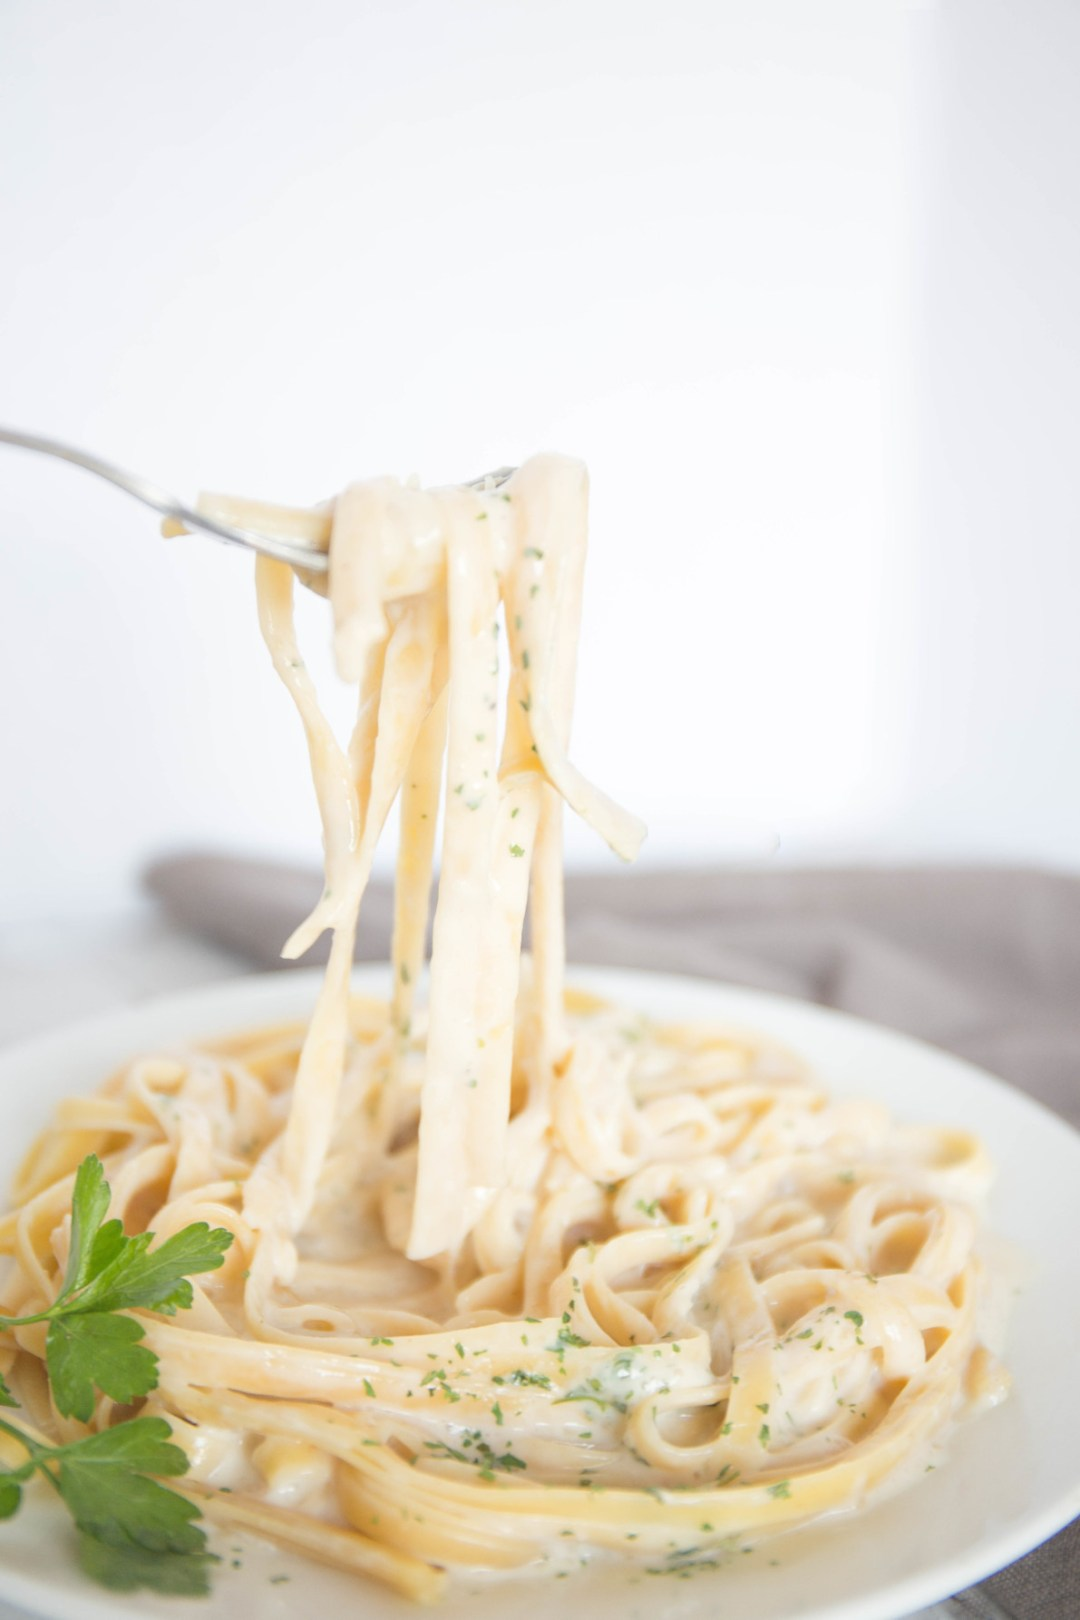 You don't need cream, parmesan or butter to make this Light Fettuccine Alfredo! It is just as good as the traditional sauce, yet has half the calories!